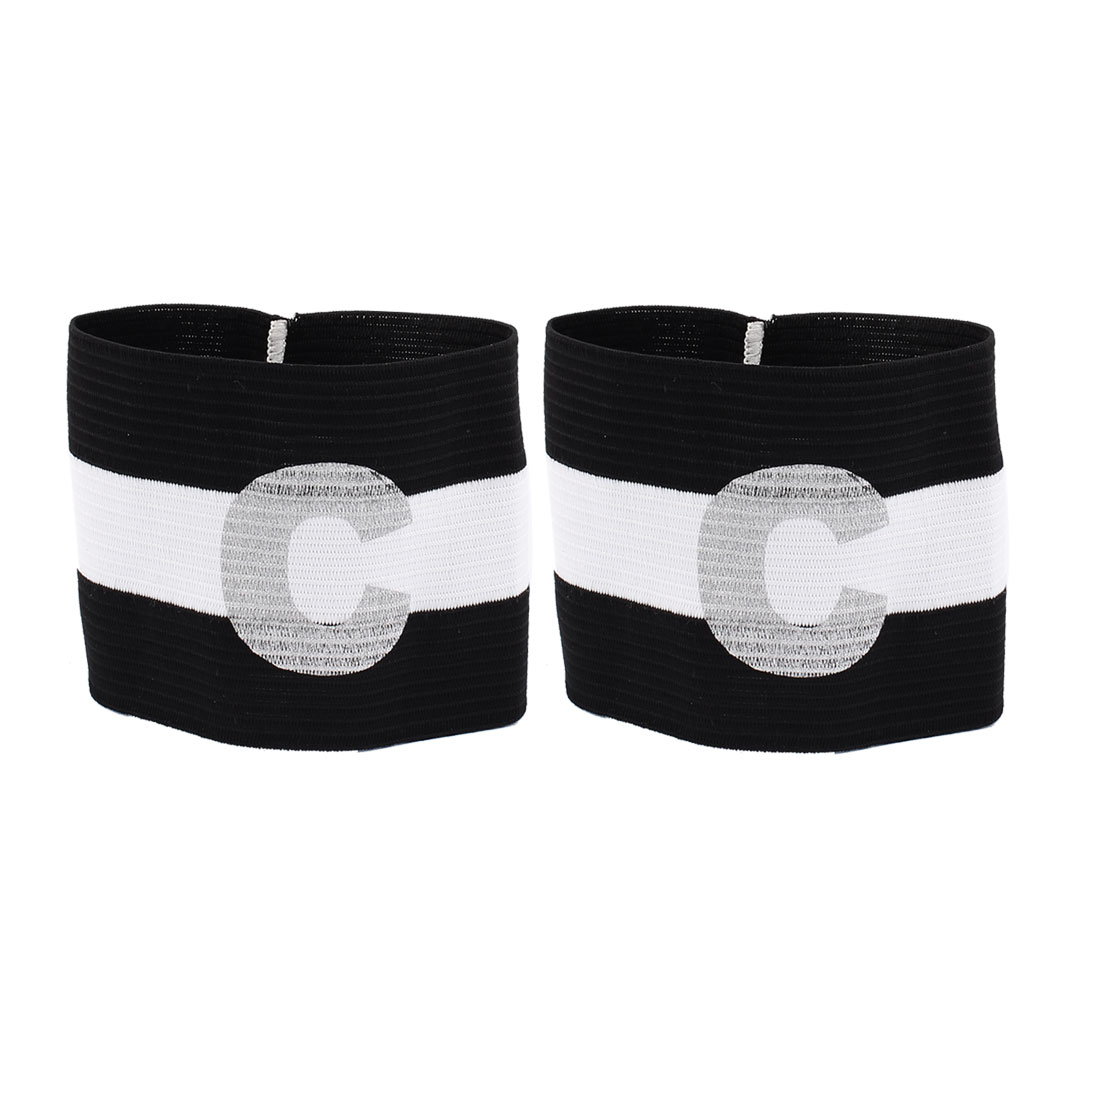 2pcs White Black C Printed Stretchy Football Soccer Sports Match Captain Armband Sleeve Badge